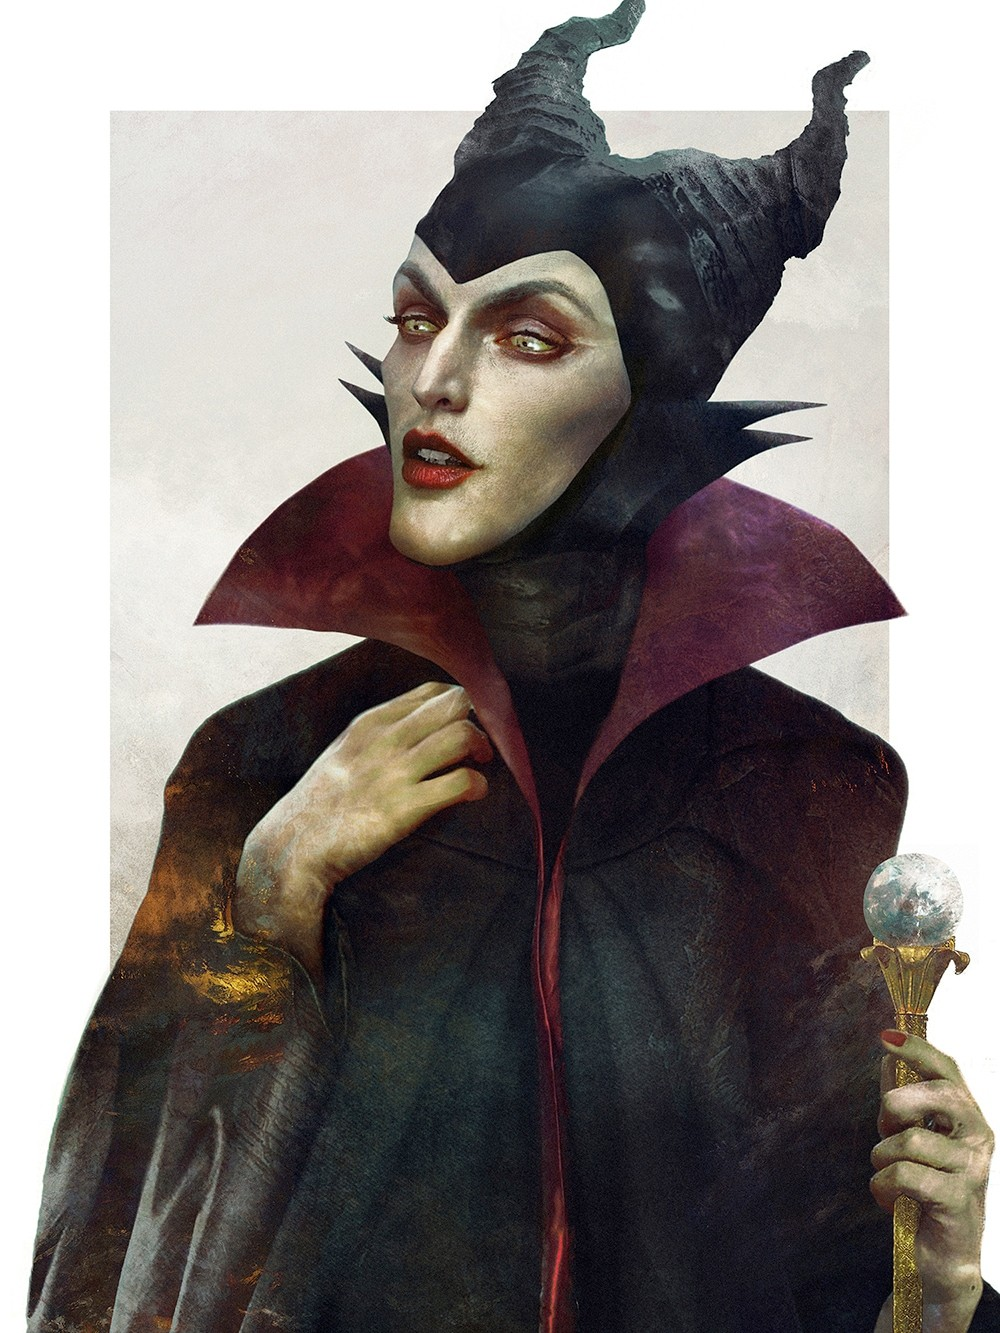 realistic drawings disney  6 Pieces of Eerily Realistic Disney Villains Artwork | Oh ..